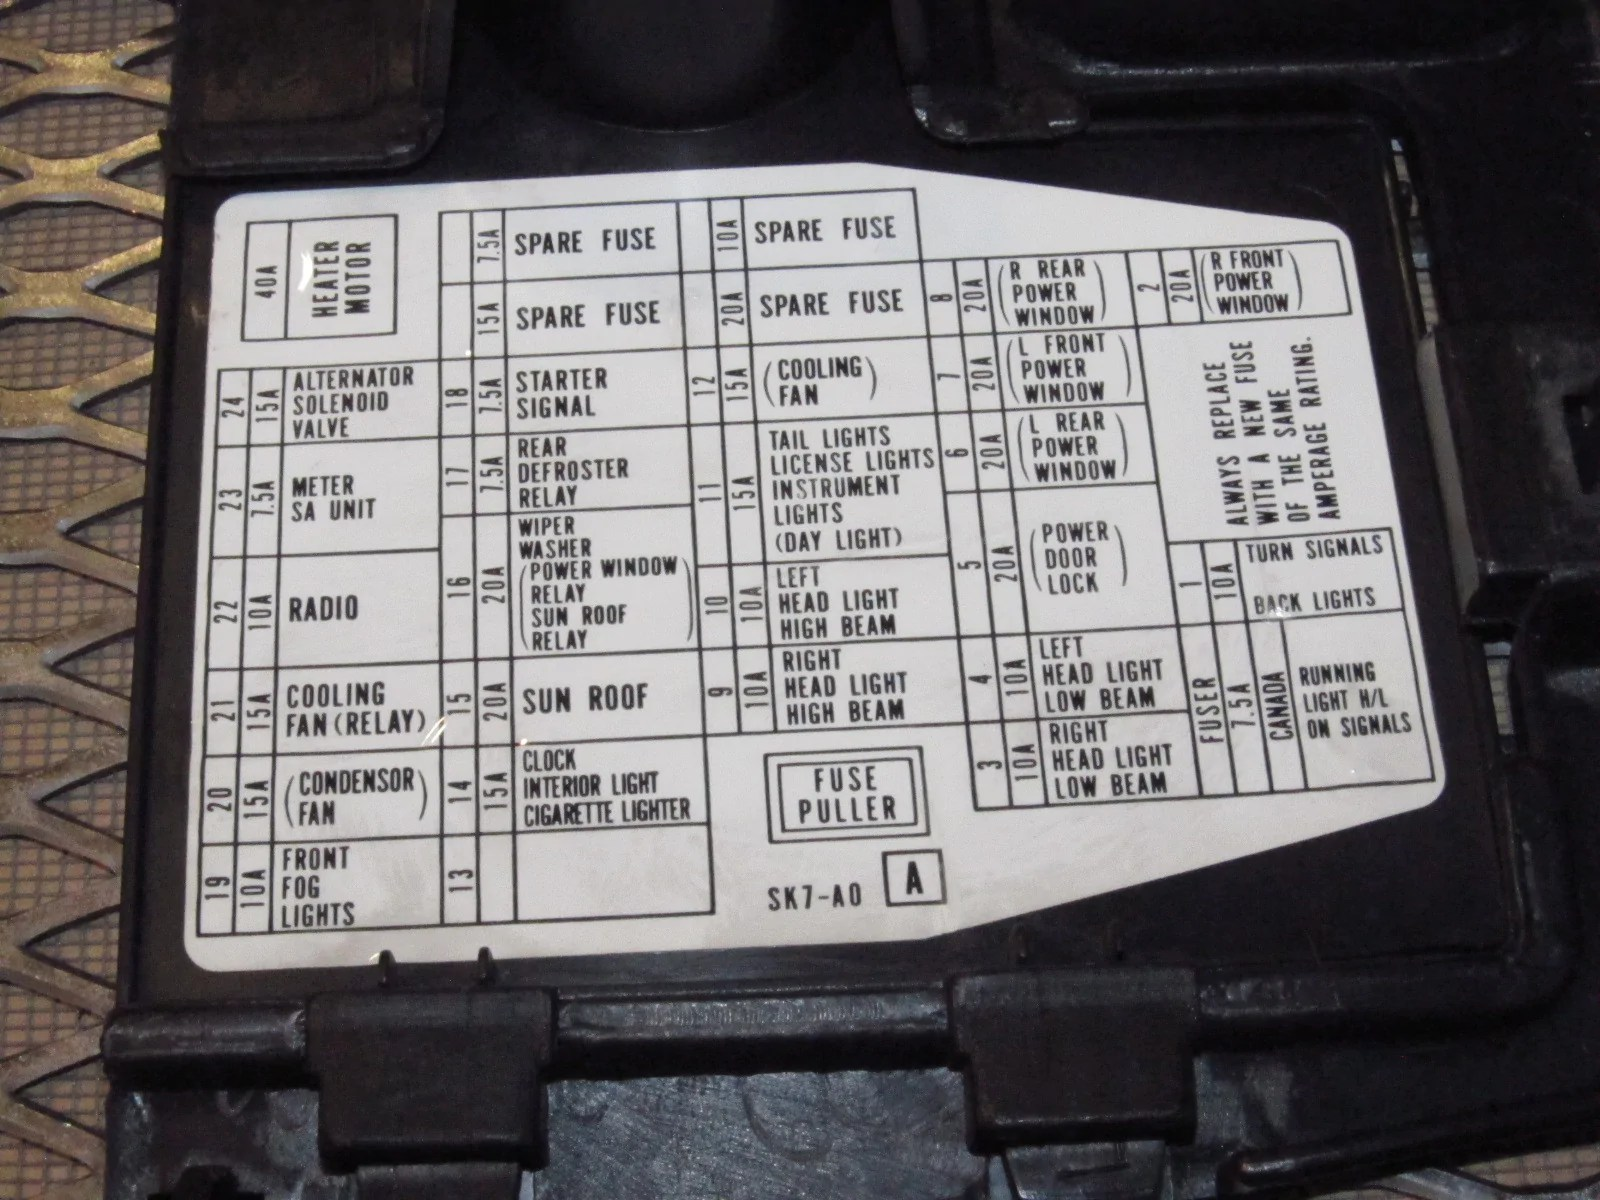 hight resolution of 91 integra fuse box diagram wiring diagram a693 acura integra fuse box wiring wiring diagrams lol